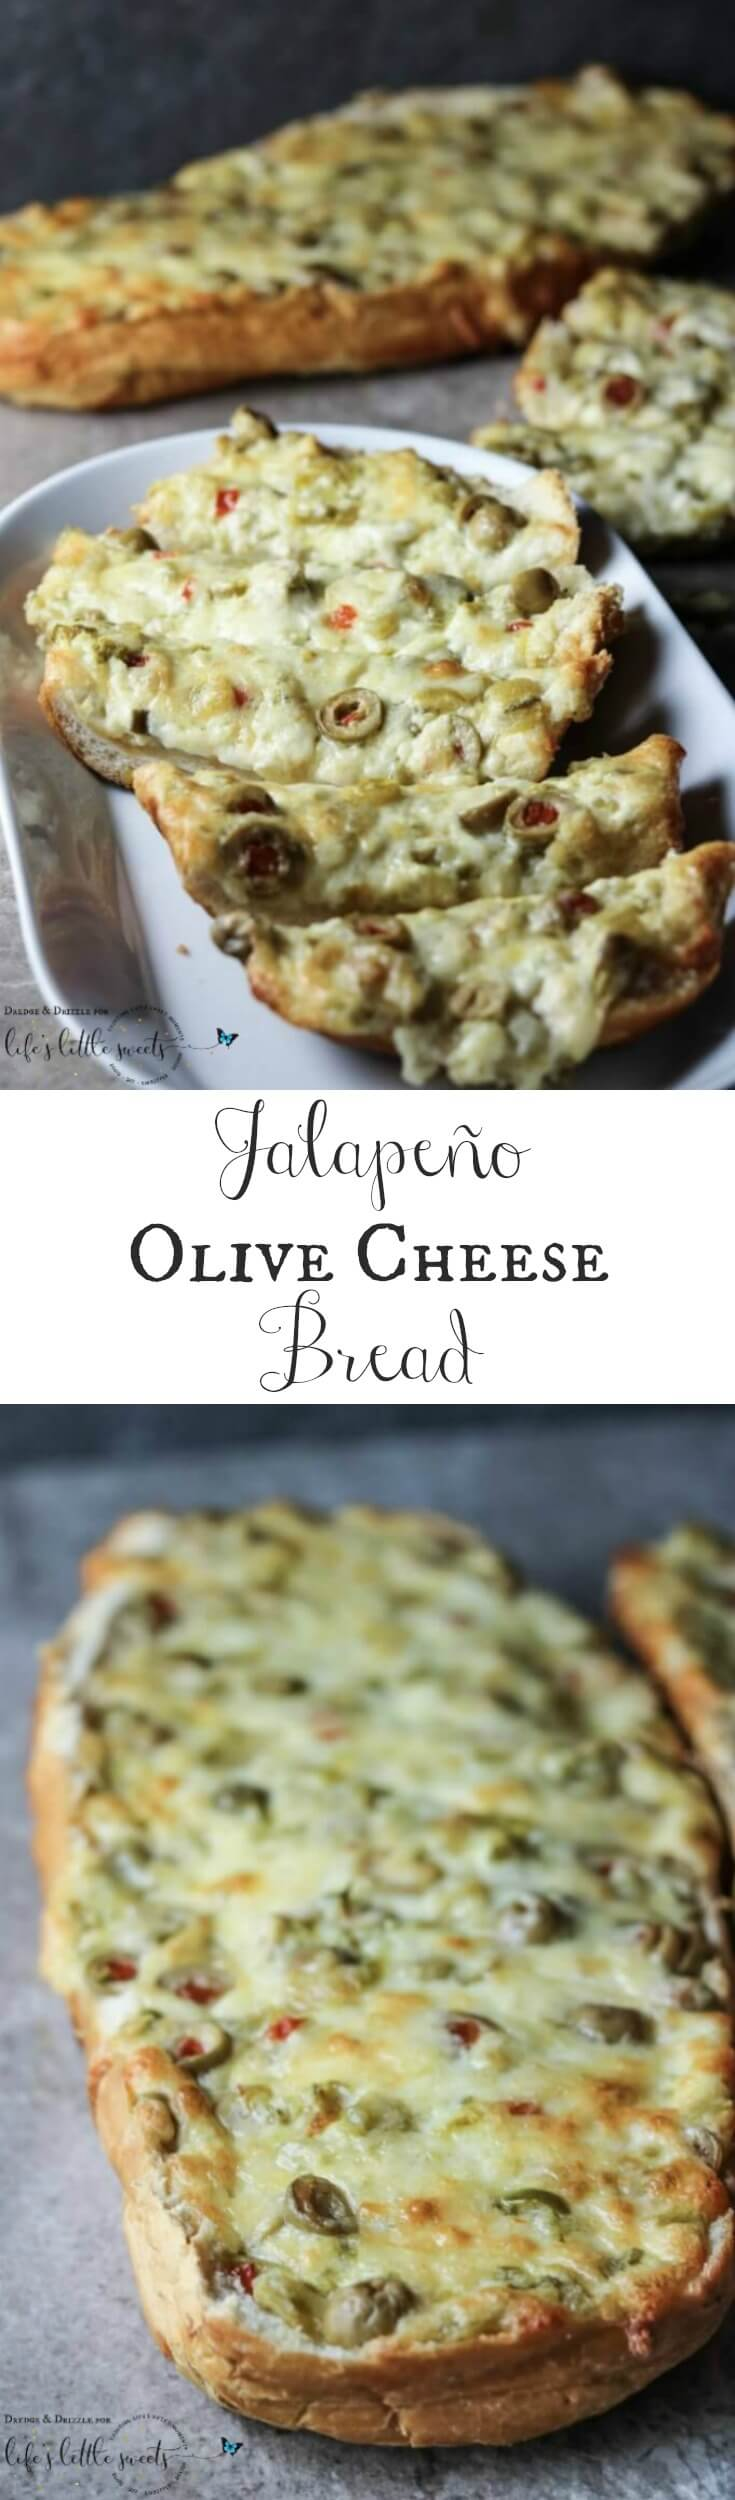 Green olives (which are my favorite), two kinds of cheese, butter, green chiles… and, oh yes, jalapeños. #greenchiles #bread #appetizer #cheese #butter #jalapeños